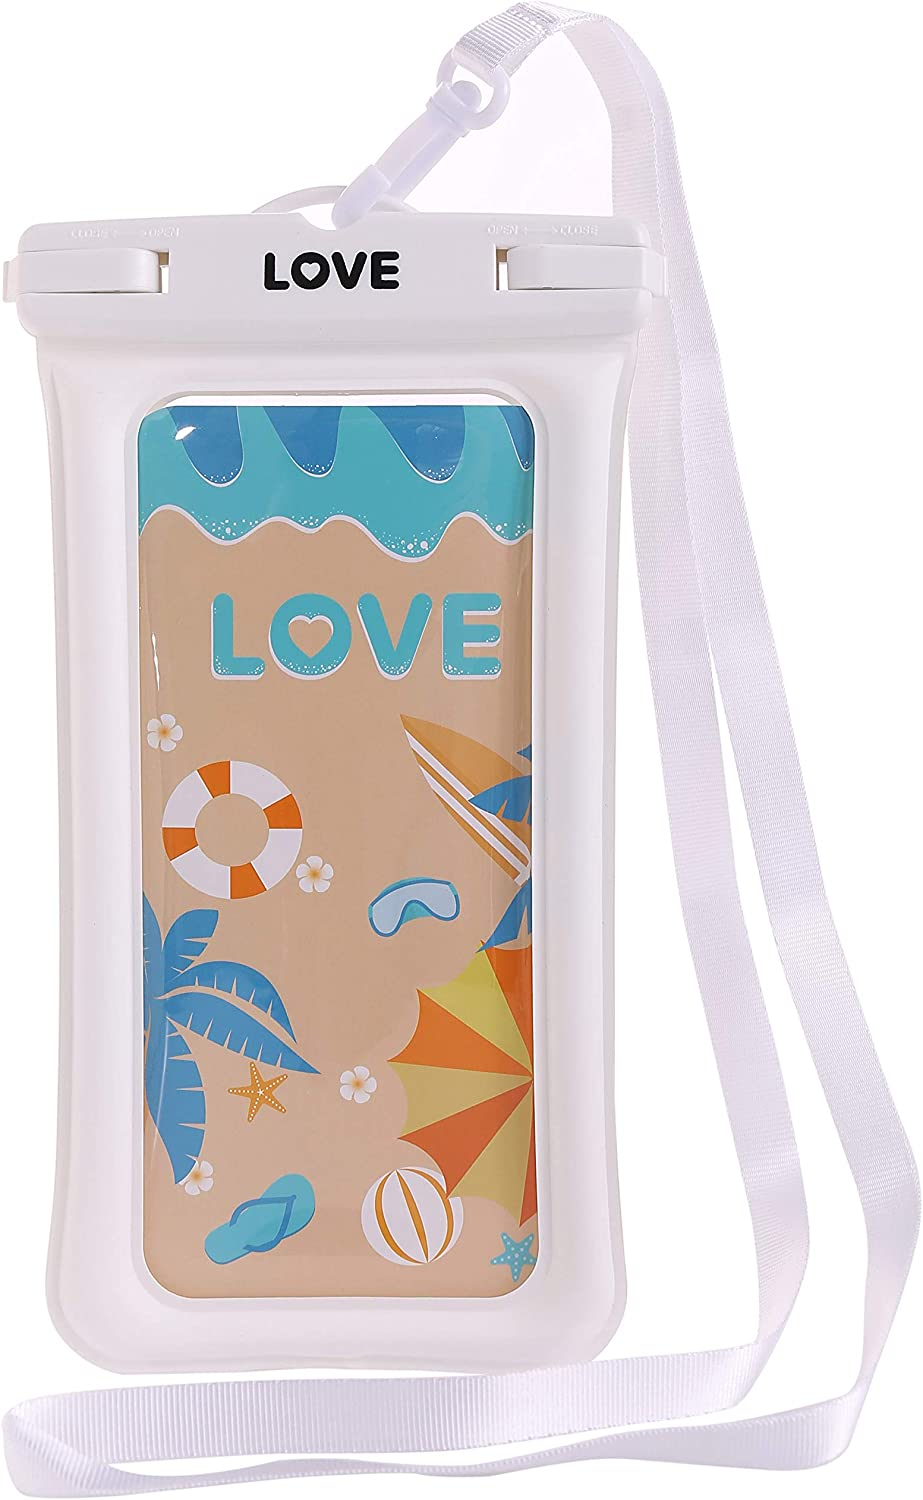 LOVE Floating Waterproof Phone Pouch Case Underwater Dry Bag IPX8 TPU for iPhone Galaxy Pixel All Smart Phone up to 6.9